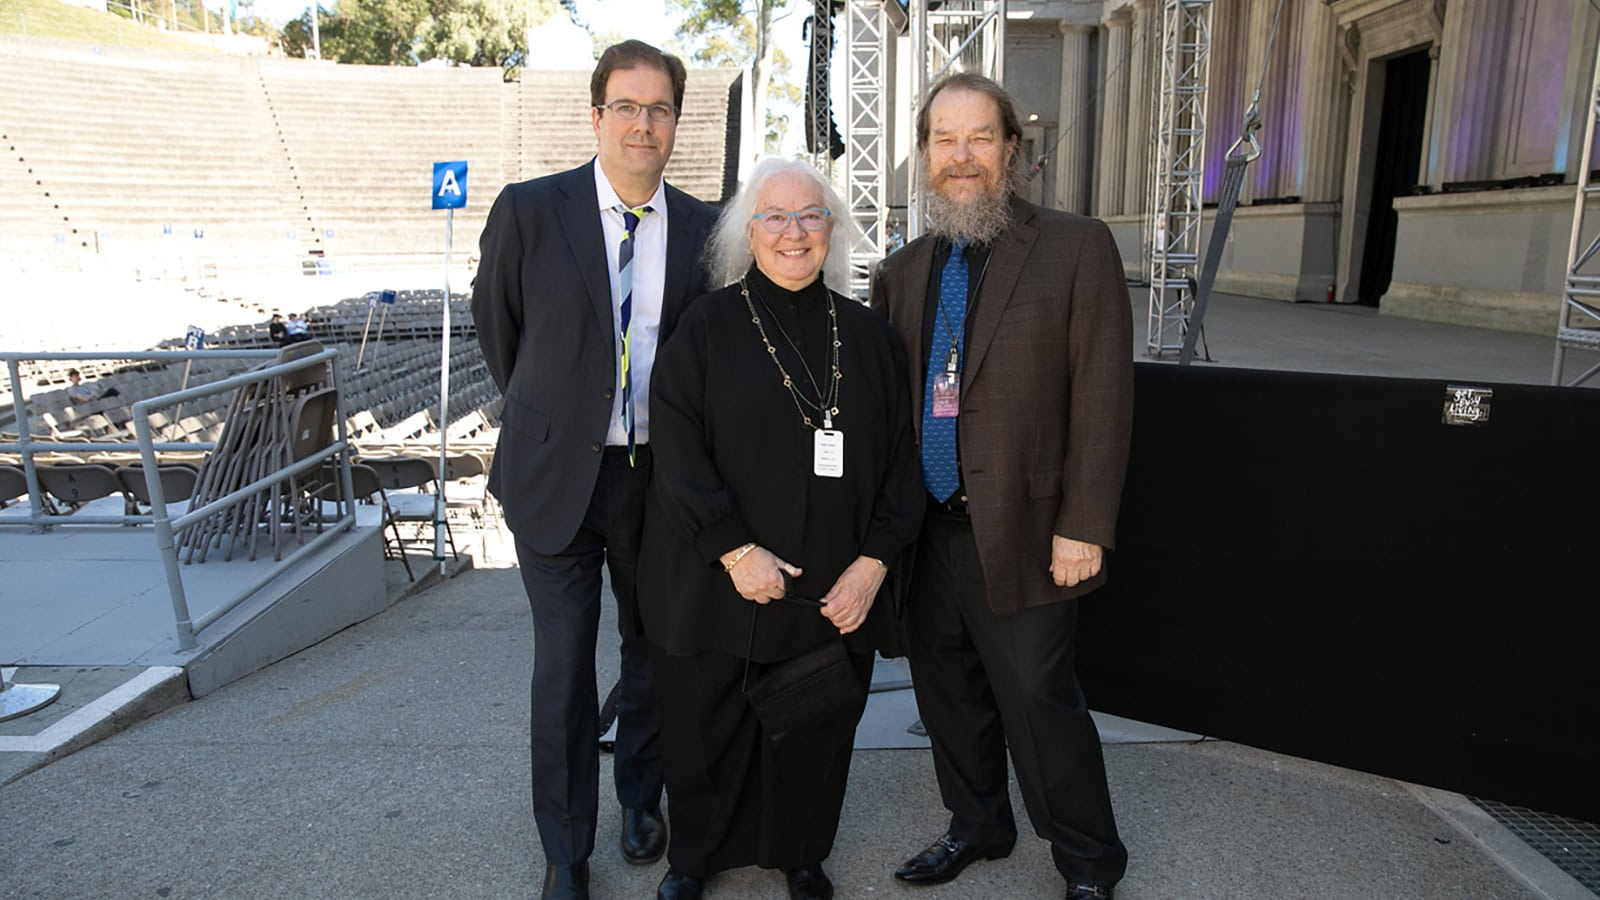 Helen Meyer joins John Meyer and director of Cal Performances Matias Tarnopolsky (left) at the Gala at the Greek, where she served as co-chair